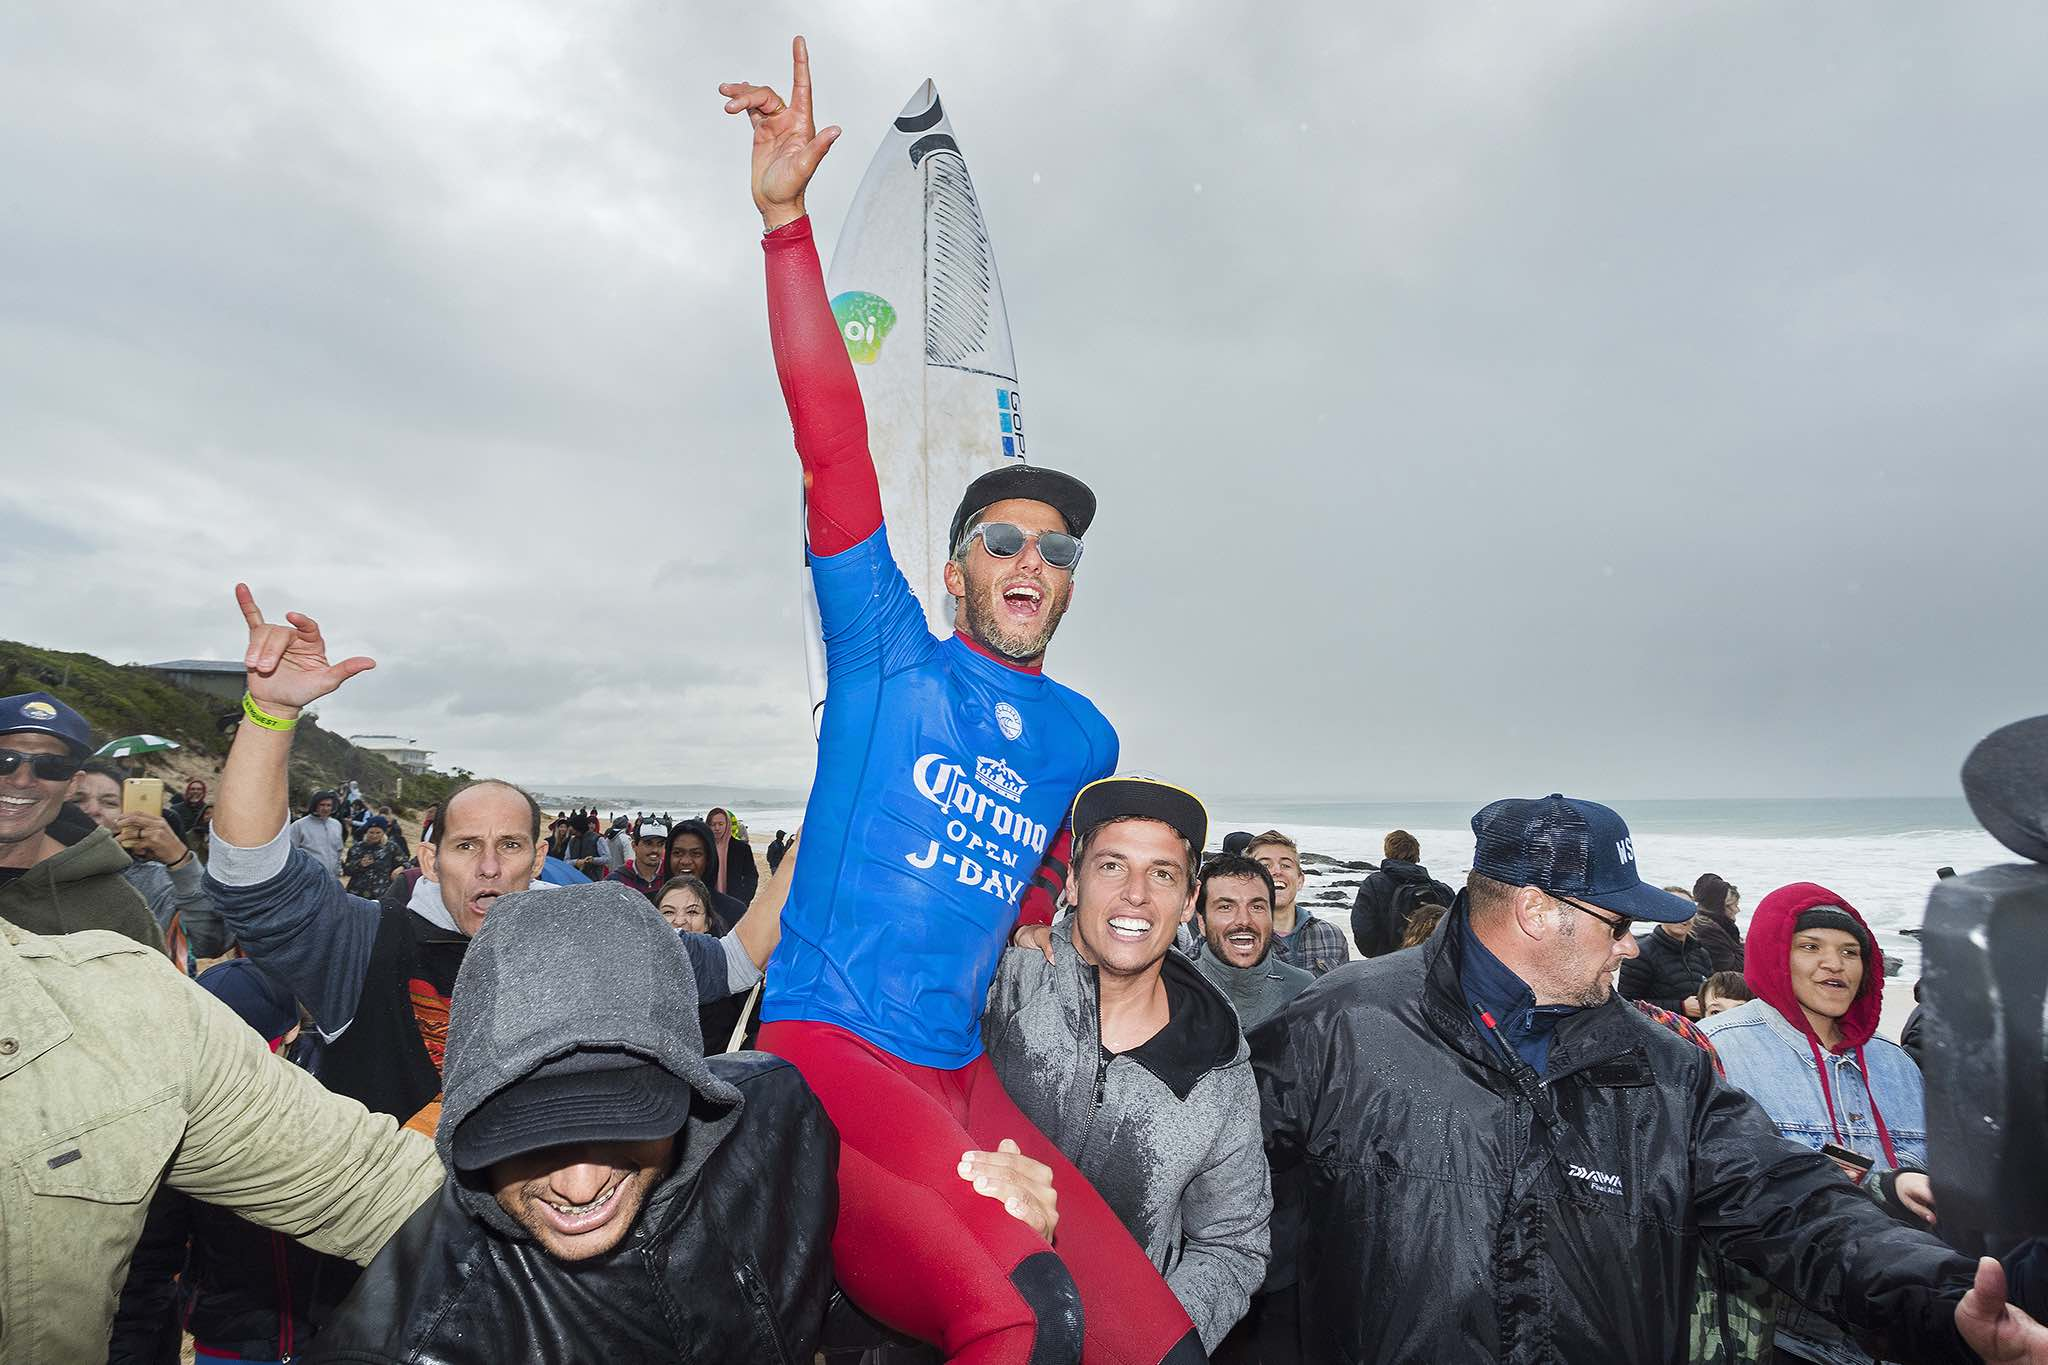 Filipe Toledo winning the 2017 Corona Open J-Bay